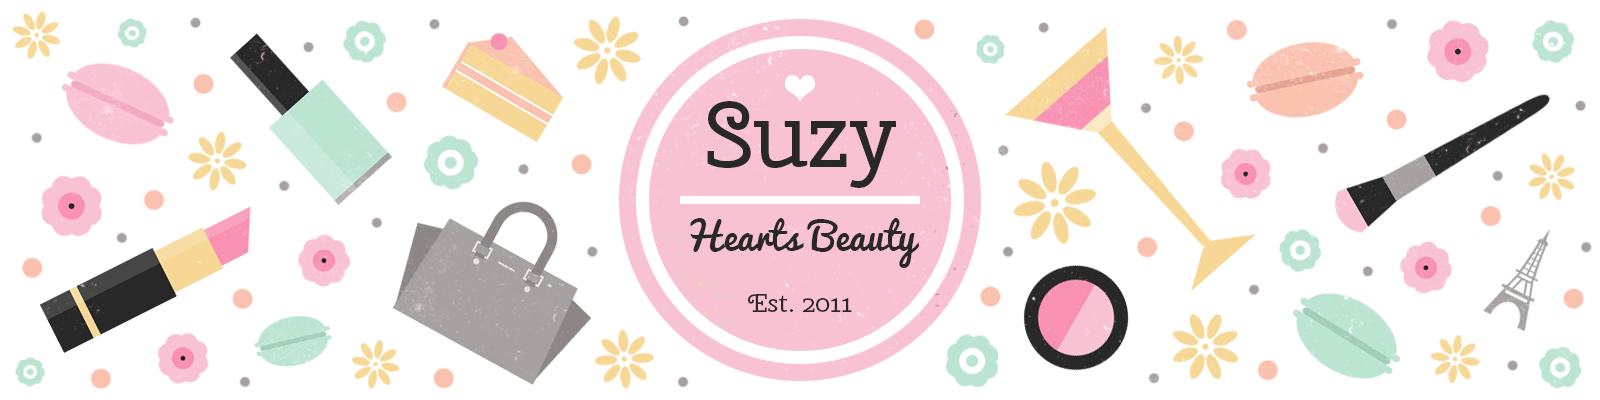 Suzy Hearts Beauty